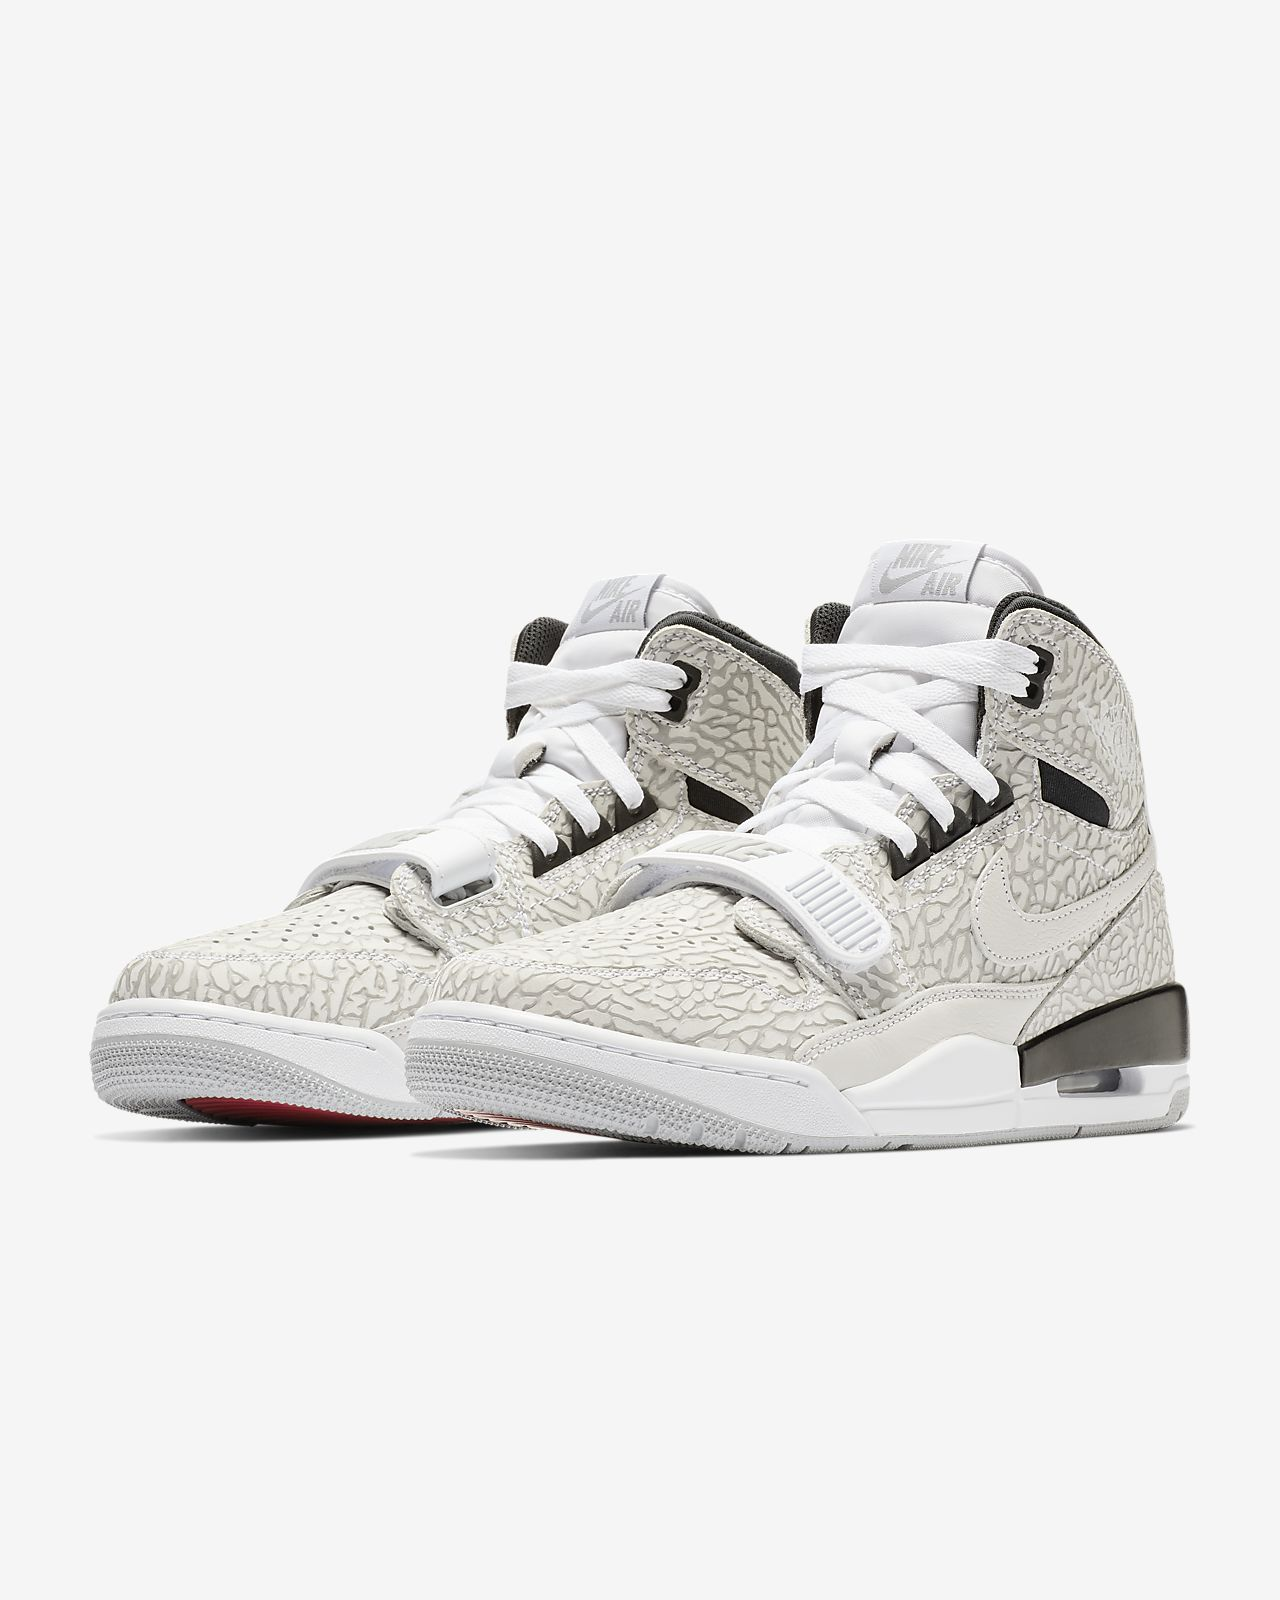 44350c612d81b1 Air Jordan Legacy 312 Men s Shoe. Nike.com NL